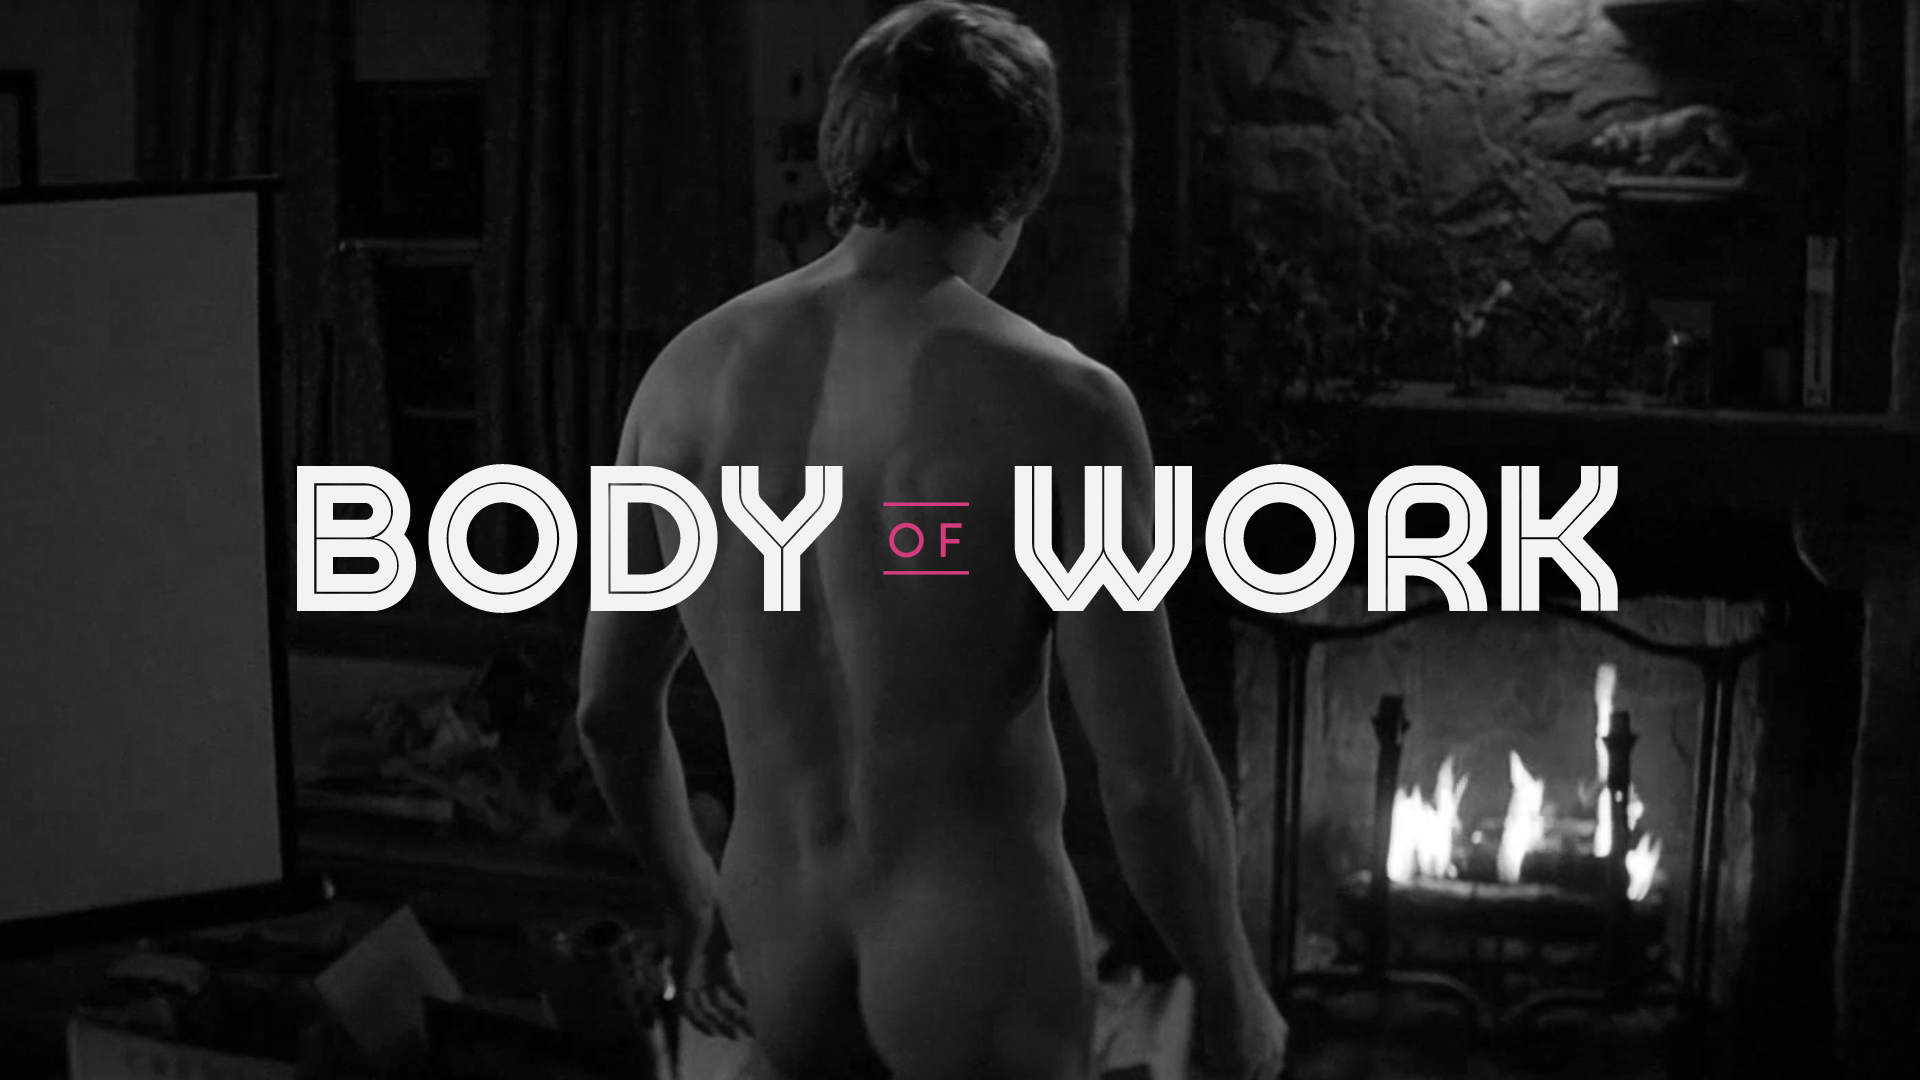 Bodyofwork actor 00 00 02 17 still003 nude preview image